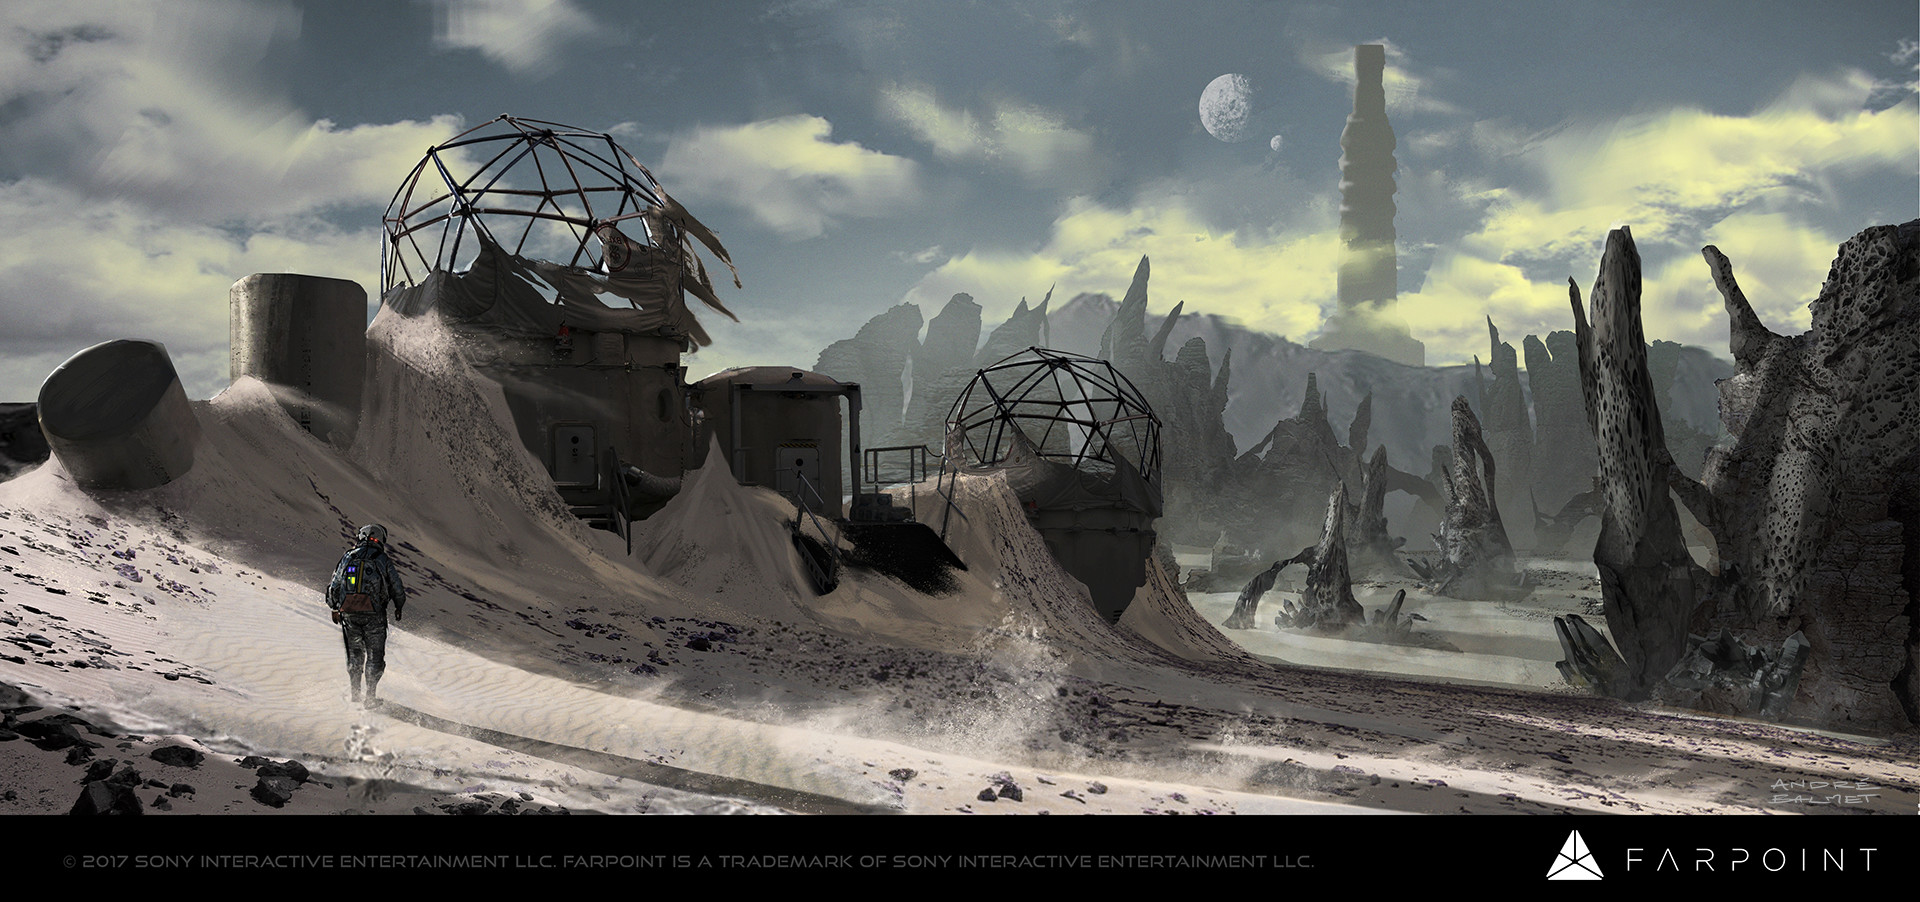 Farpoint Concept Art by Andre Balmet